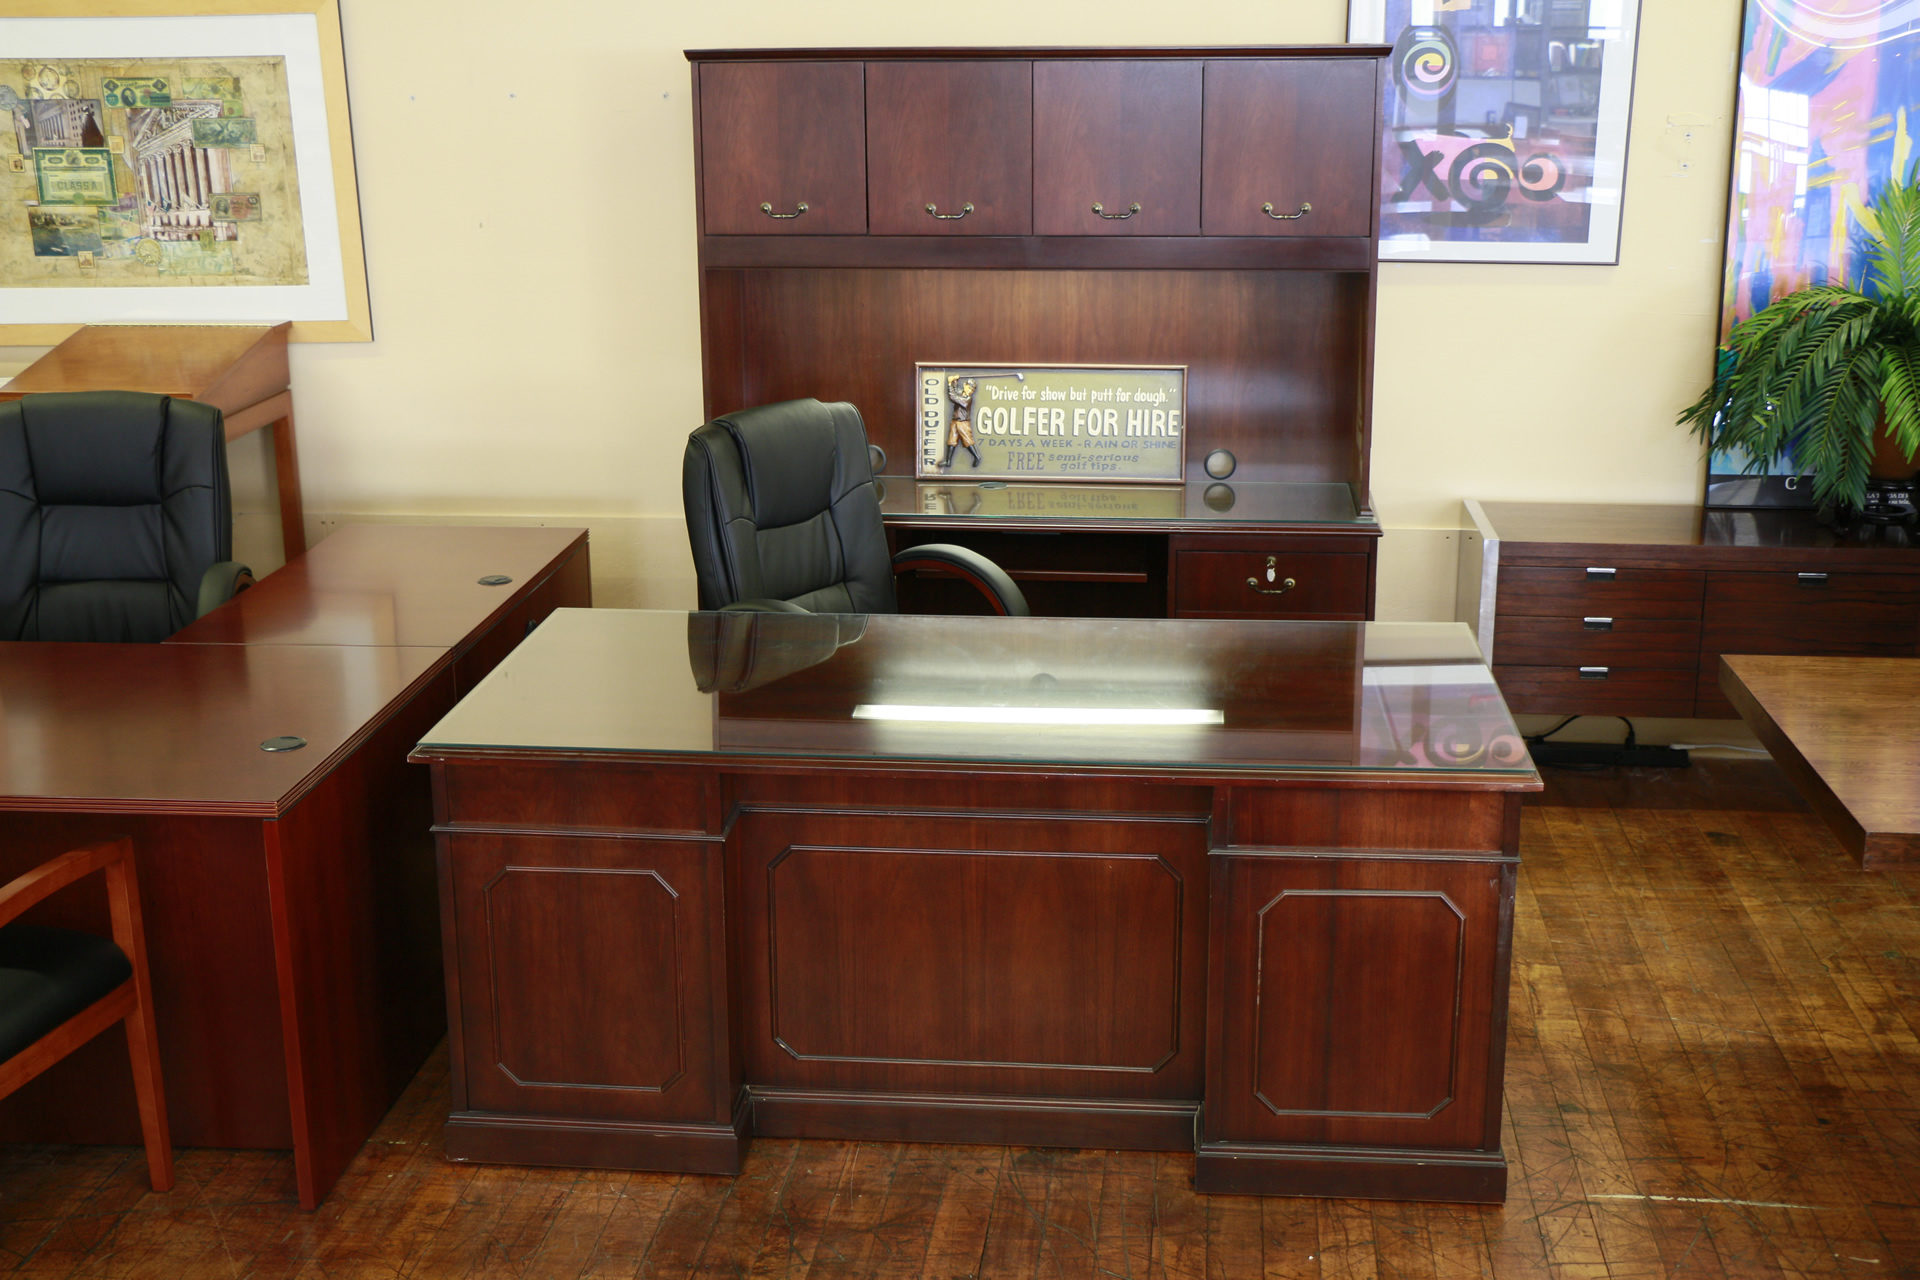 peartreeofficefurniture_peartreeofficefurniture_mg_3678.jpg